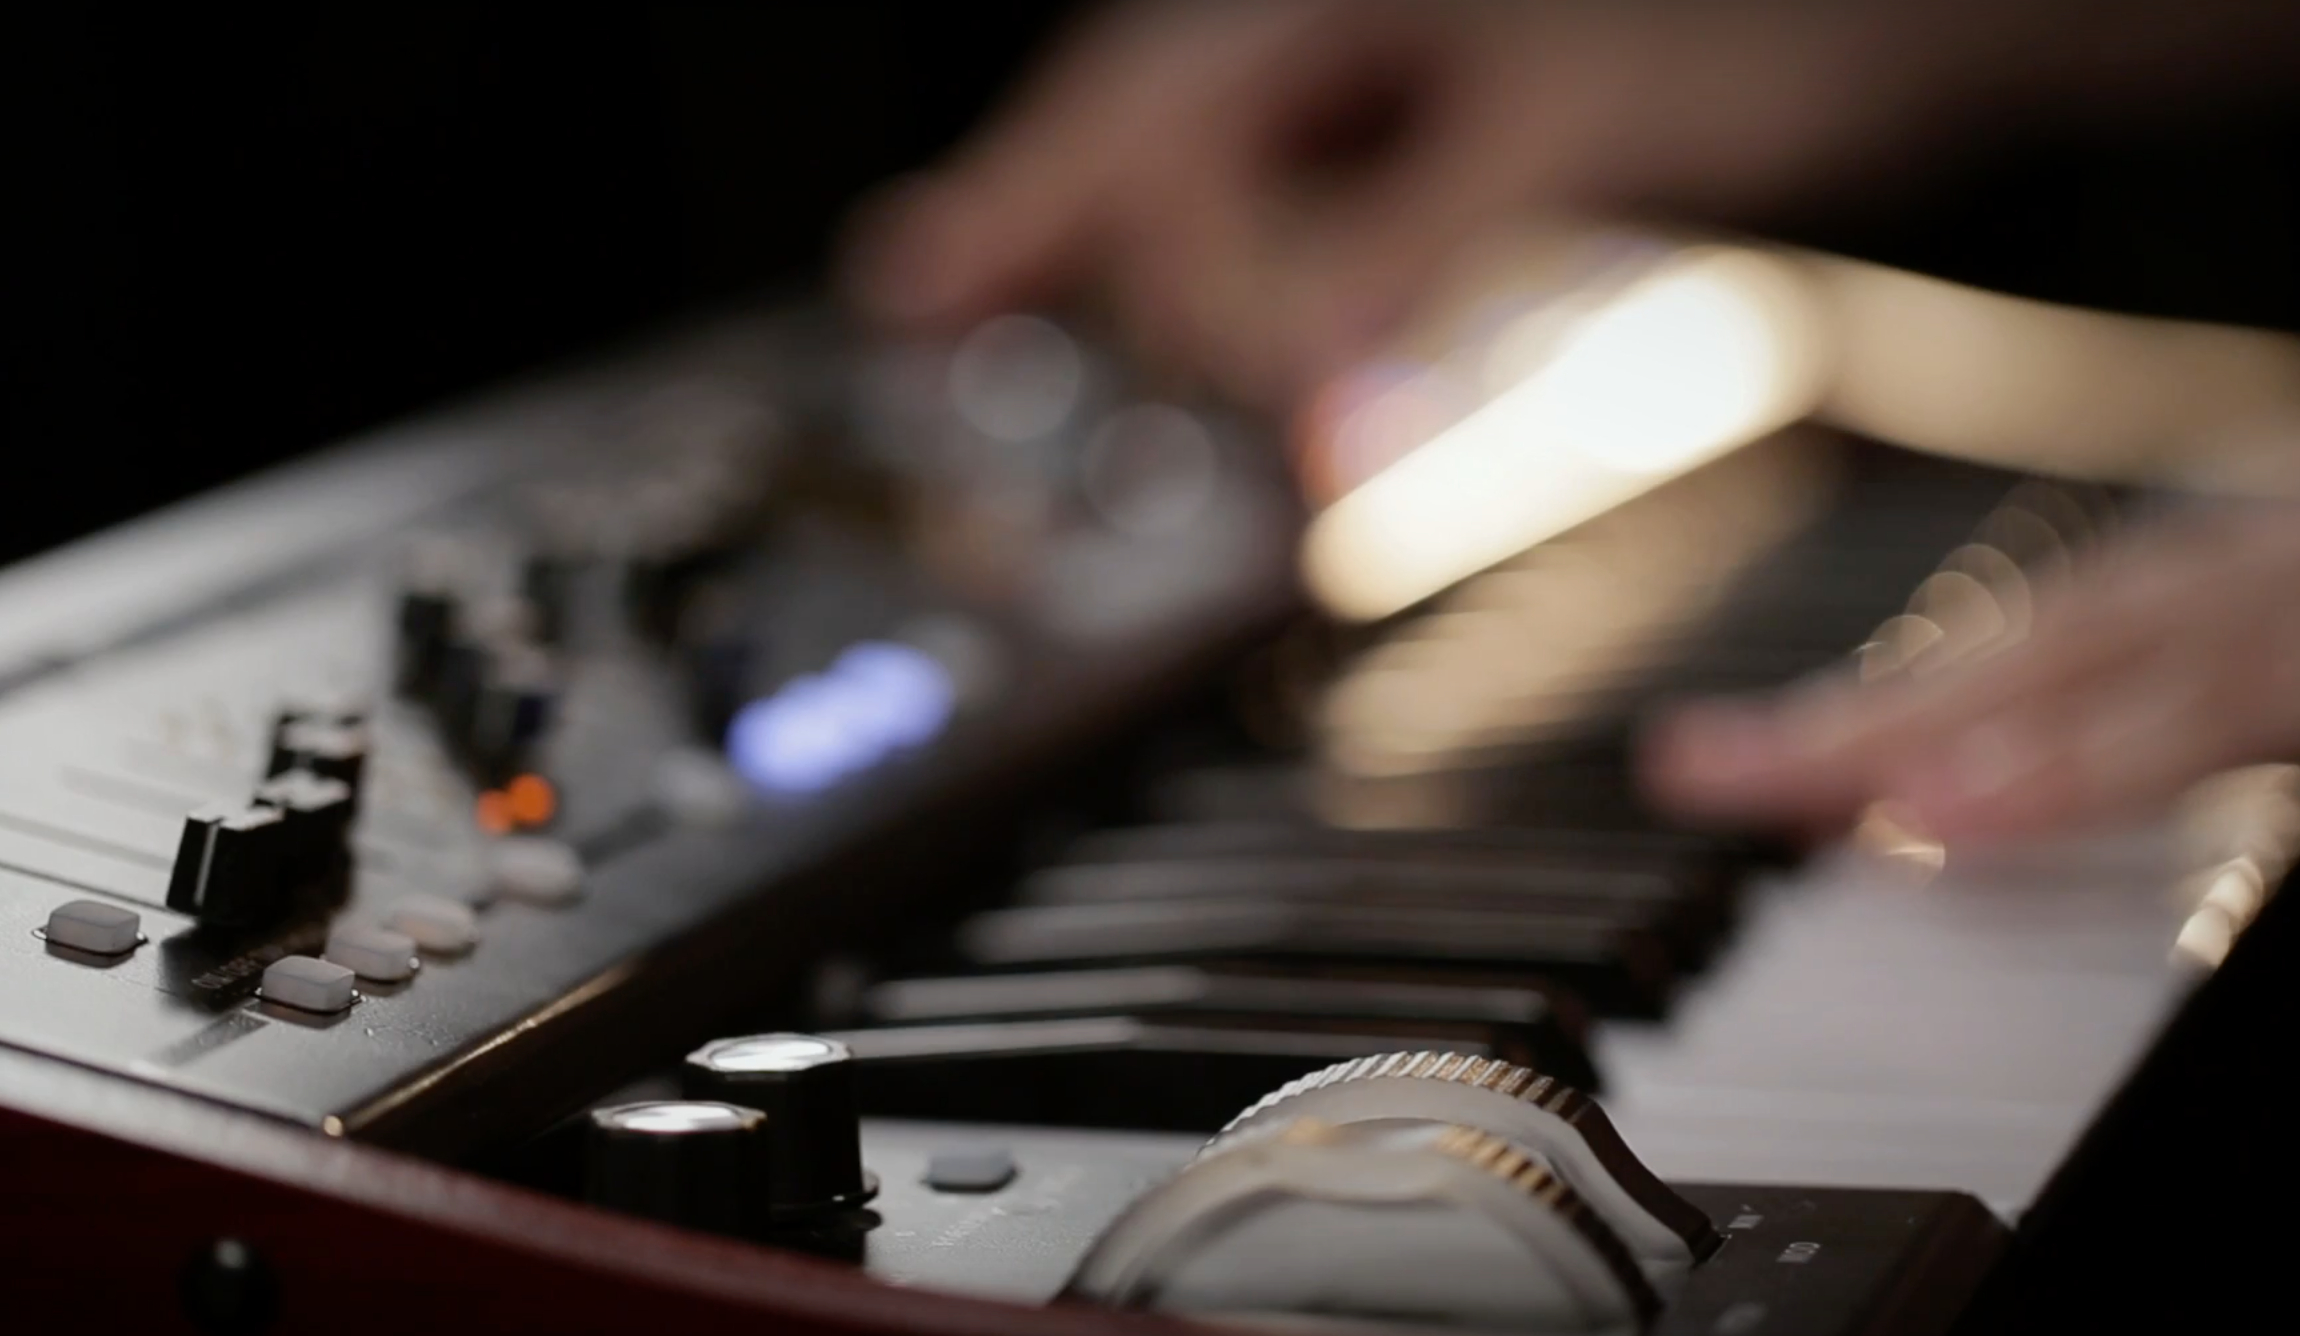 Budget gear company Behringer teases new analog synth